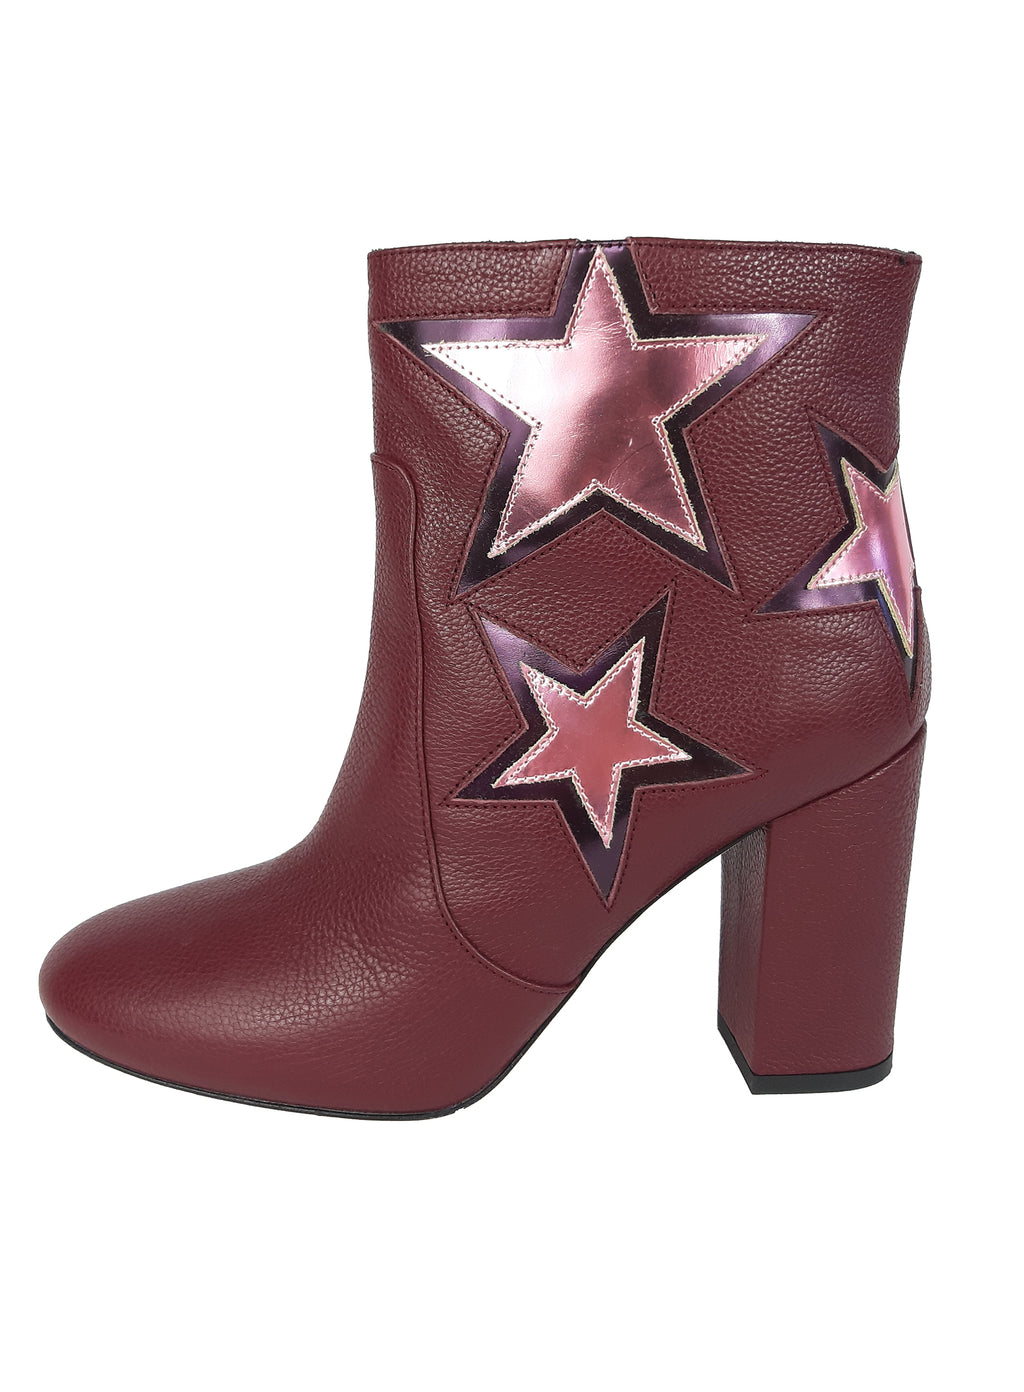 Pinko Bordeaux Leather ankle boots  with silver pink stars Size 37 (EU)